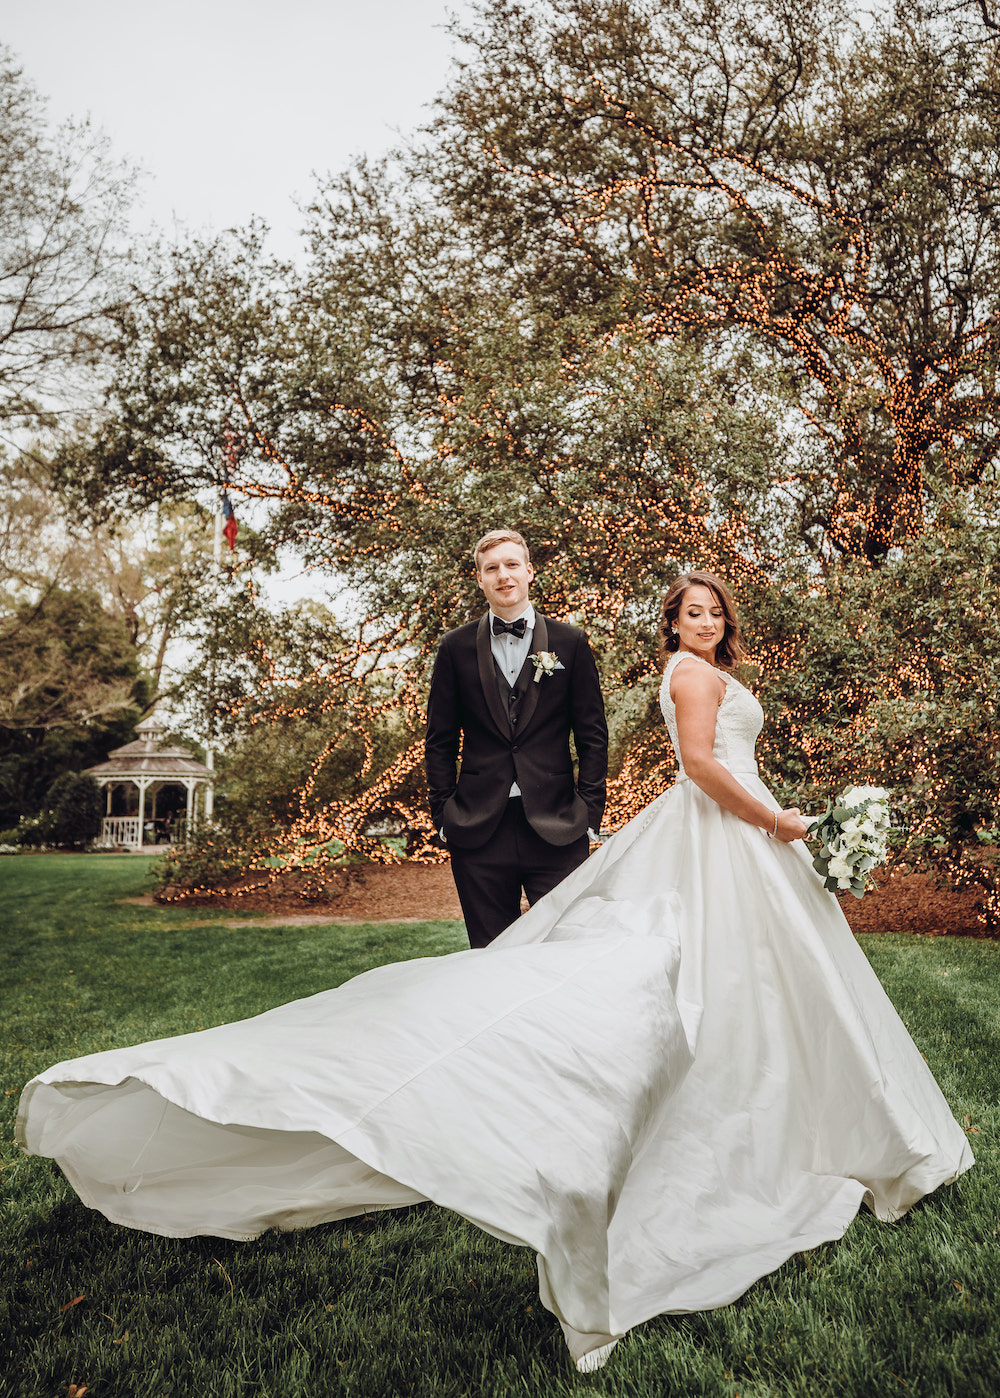 Bride wearing an elegant wedding gown and groom in black tuxedo posed in front of The Houstonian live oak tree